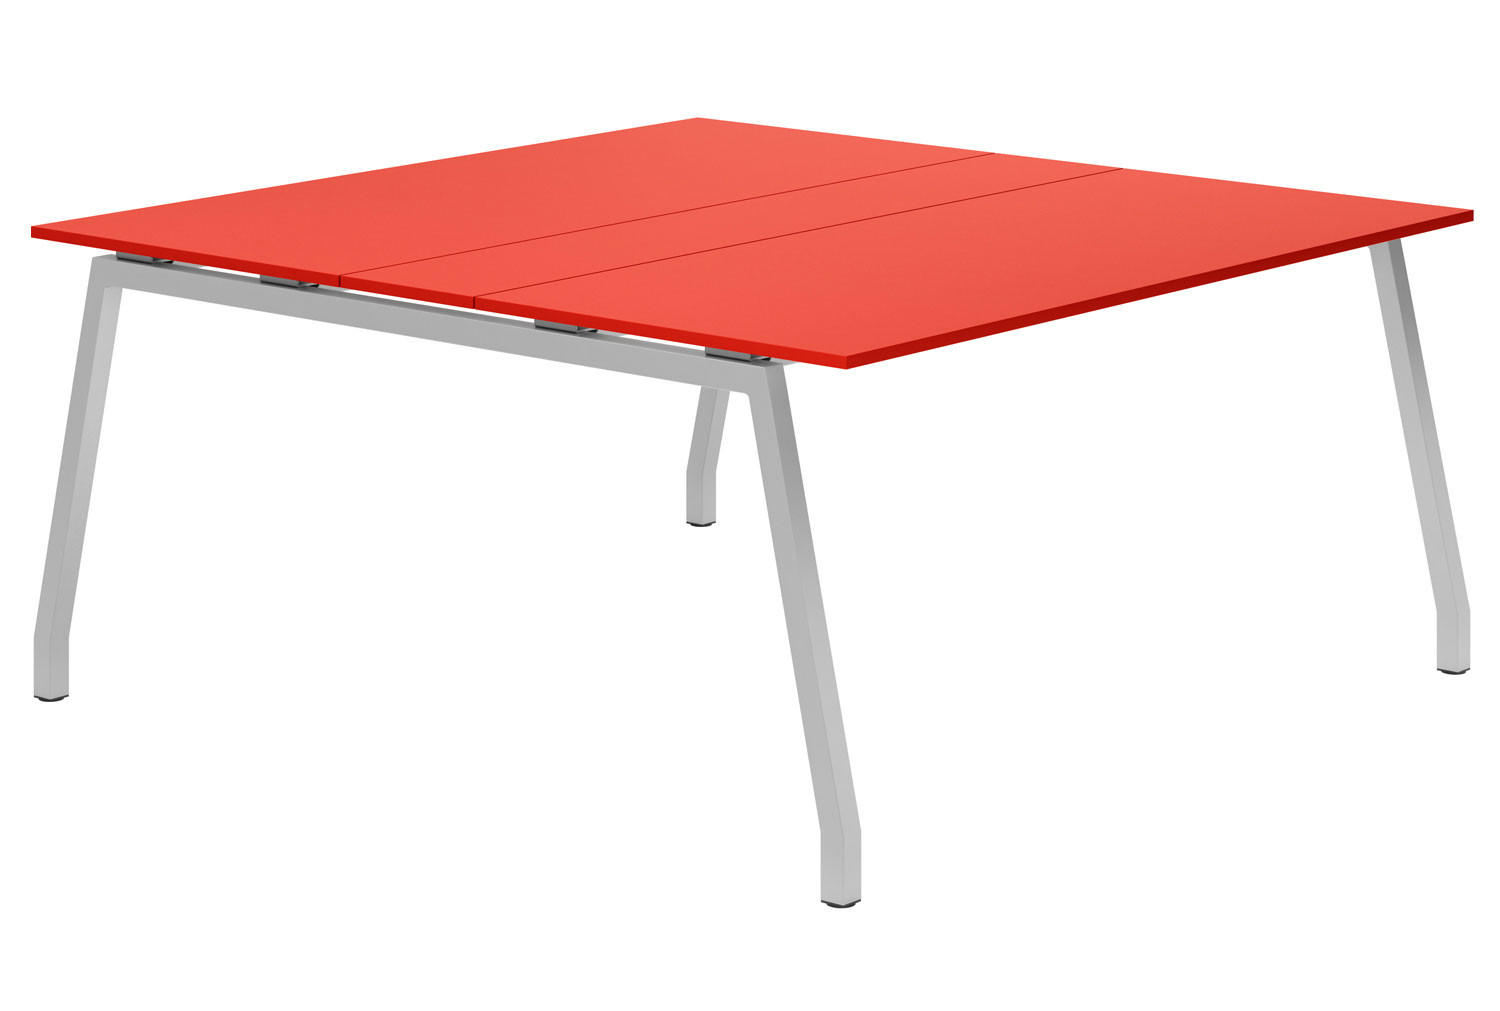 Campos A-Frame 6-8 Person Meeting Table (Red)